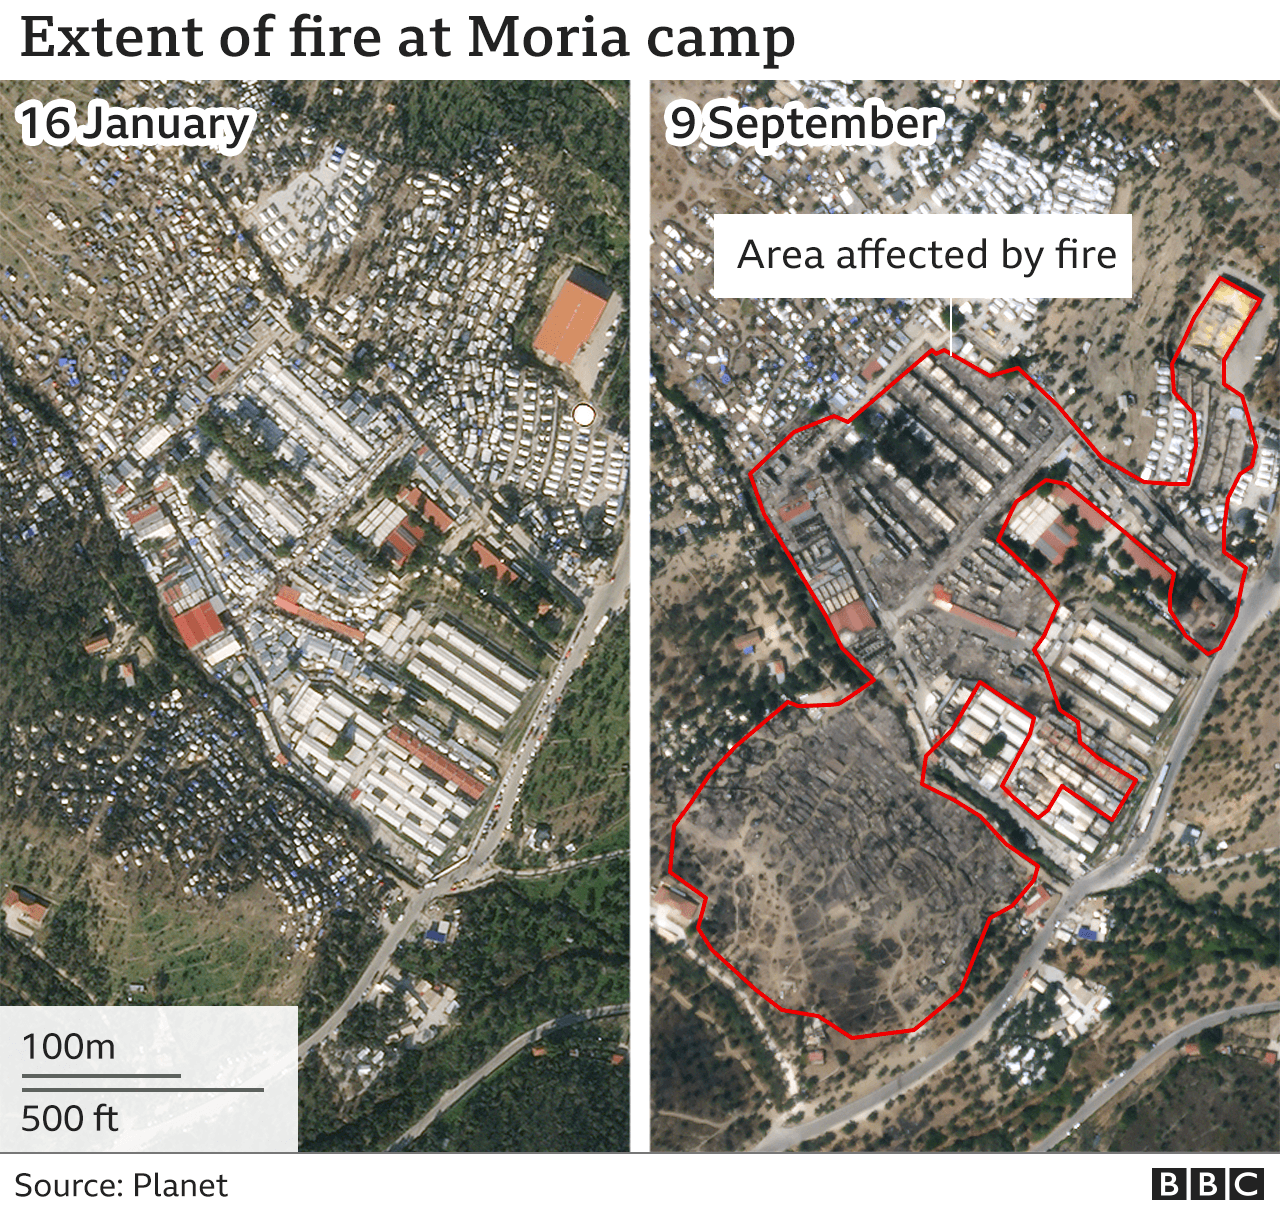 Map showing the extent of fire in Moria Camp